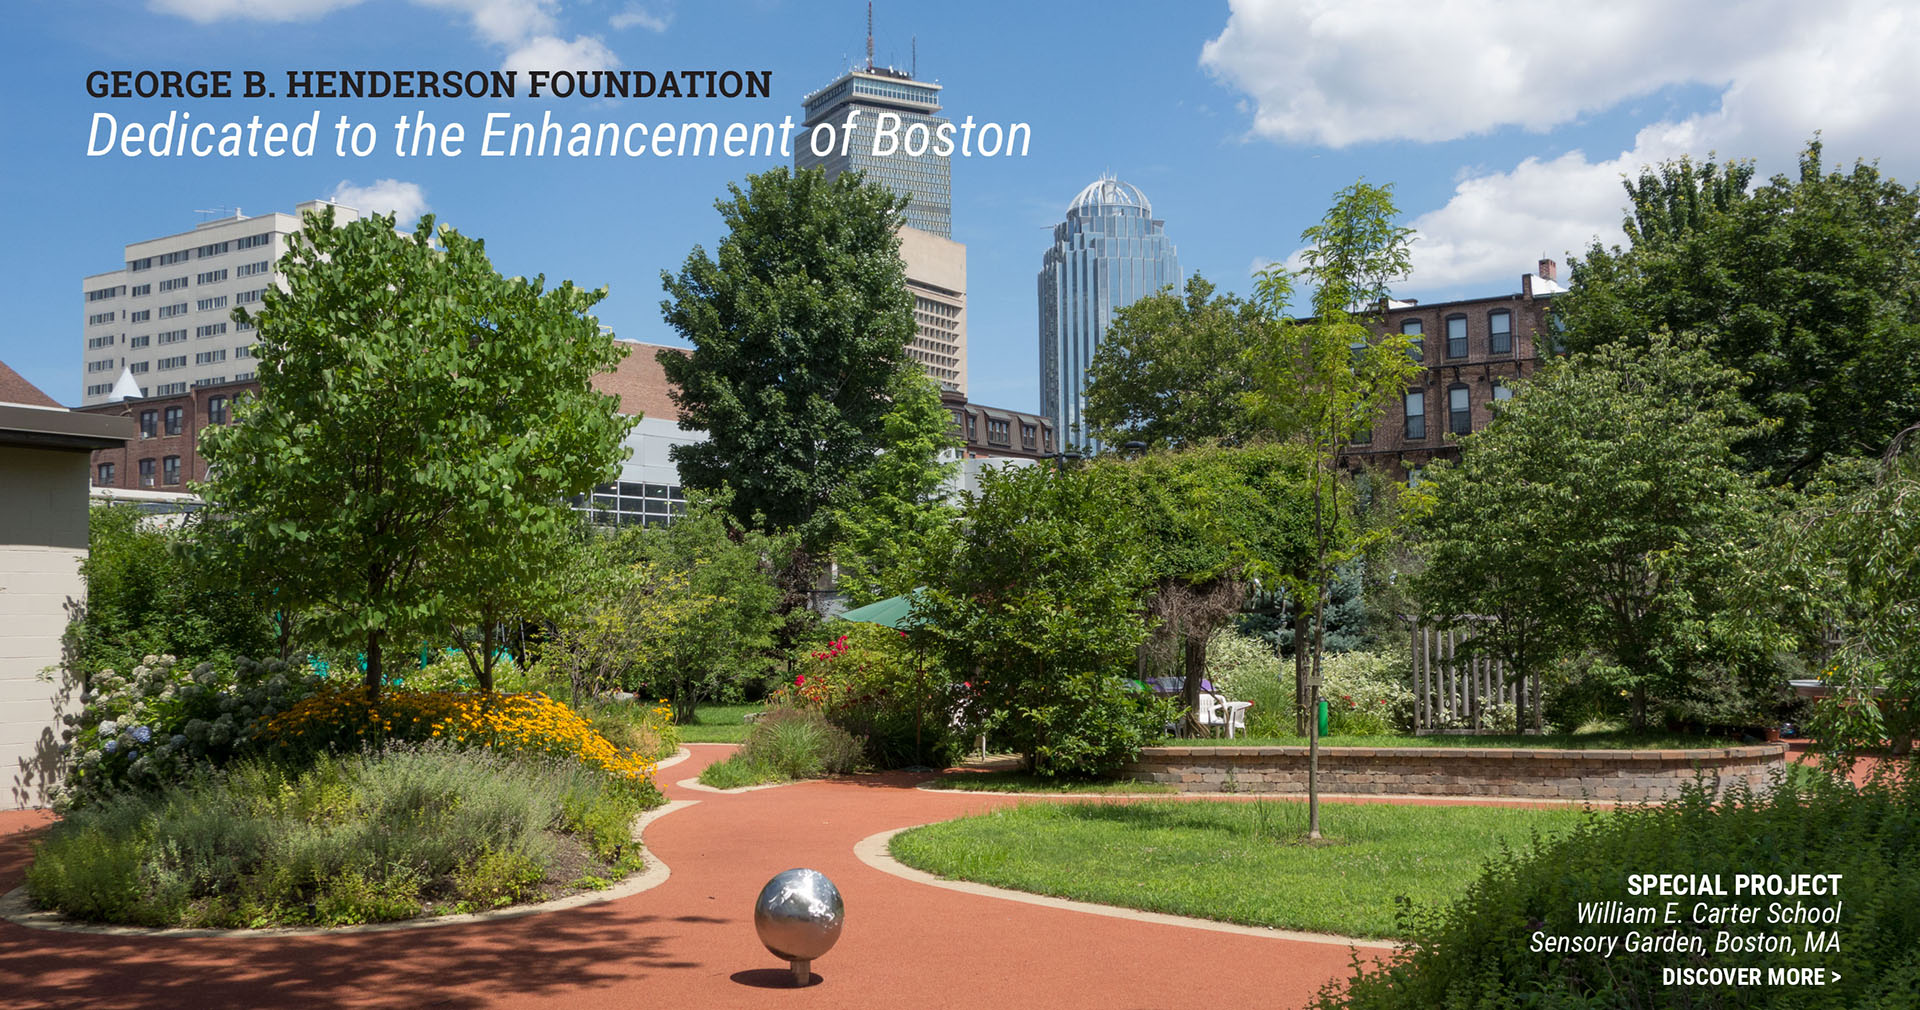 George B. Henderson Foundation | Dedicated to the Enhancement of Boston | photo of the Sensory Garden at the William E. Carter School, Boston, MA